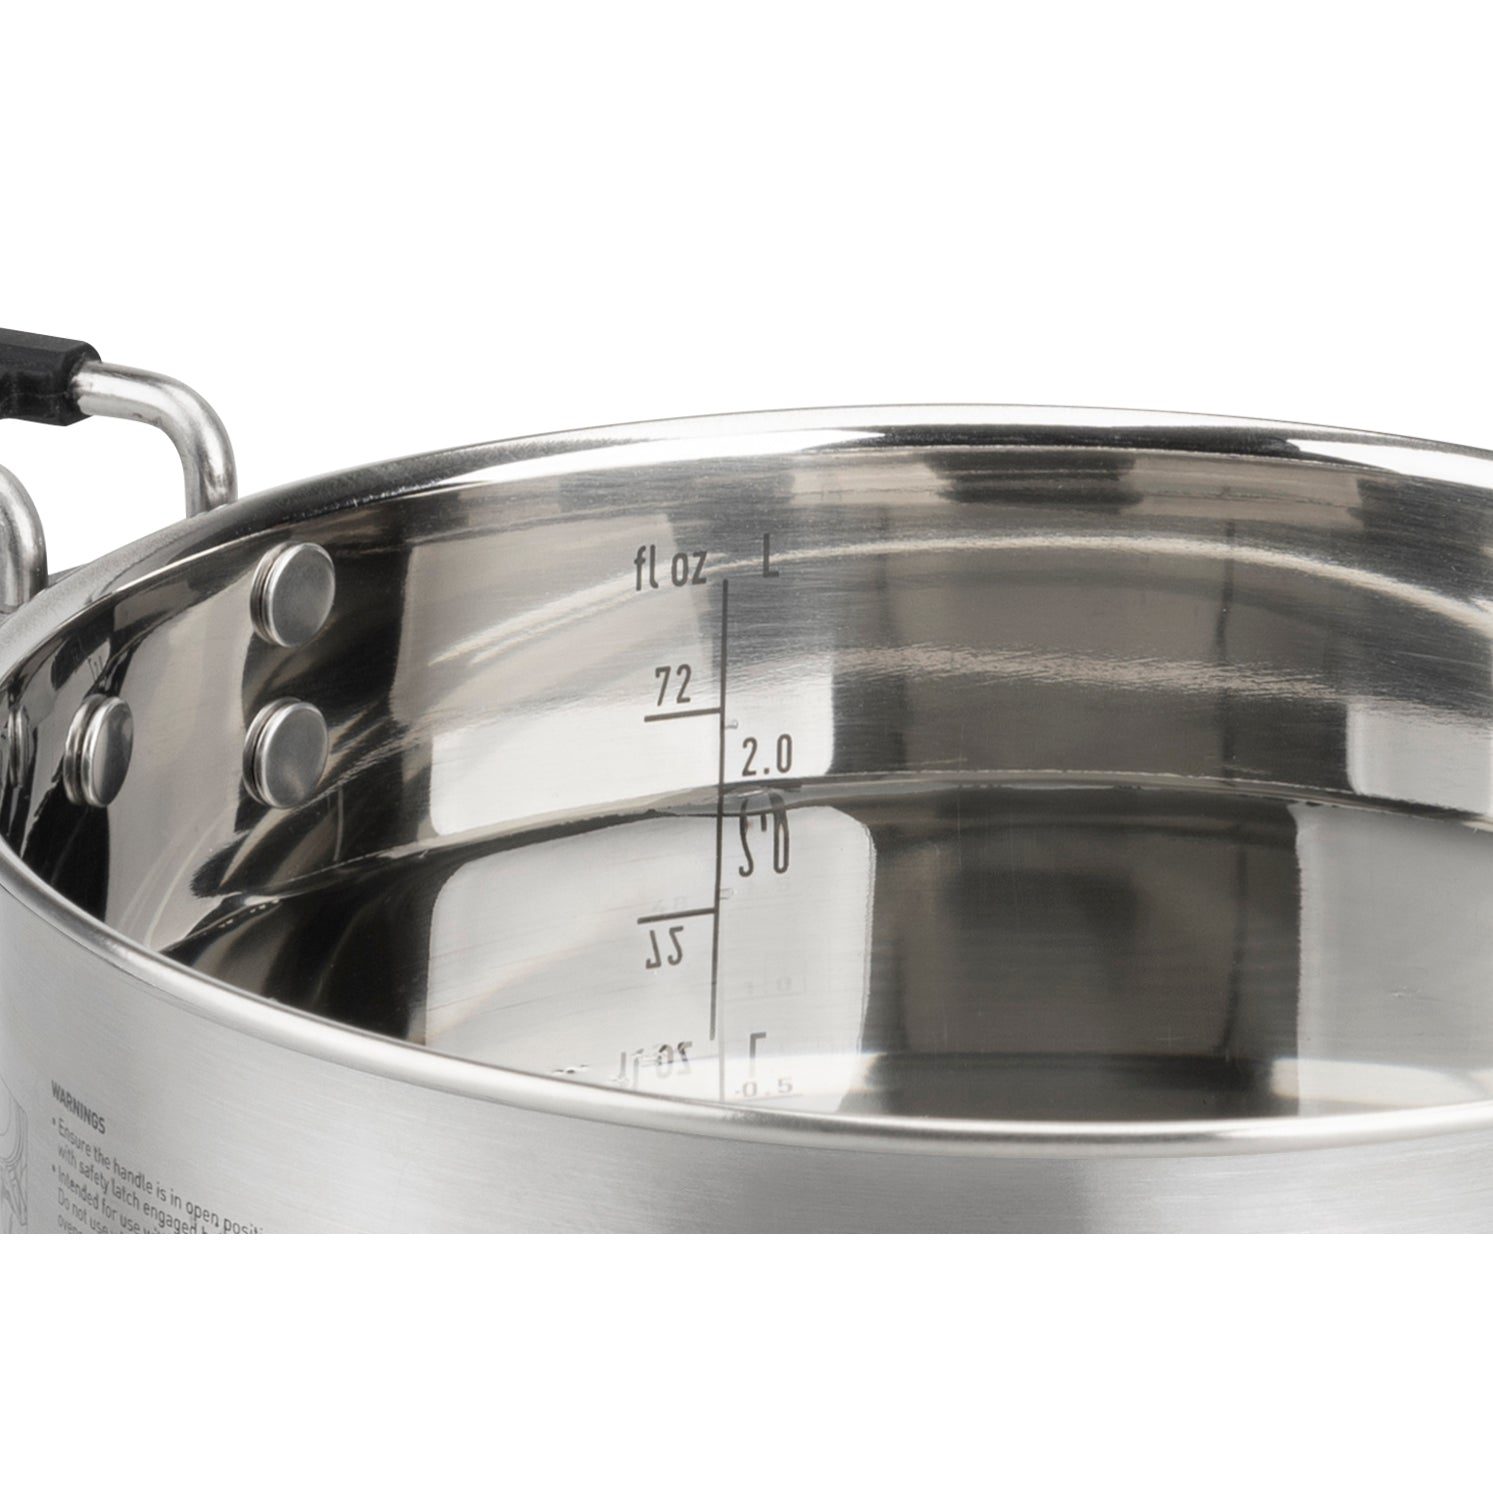 Sigma Stainless Steel Pot for Camping _ Built in Measurements